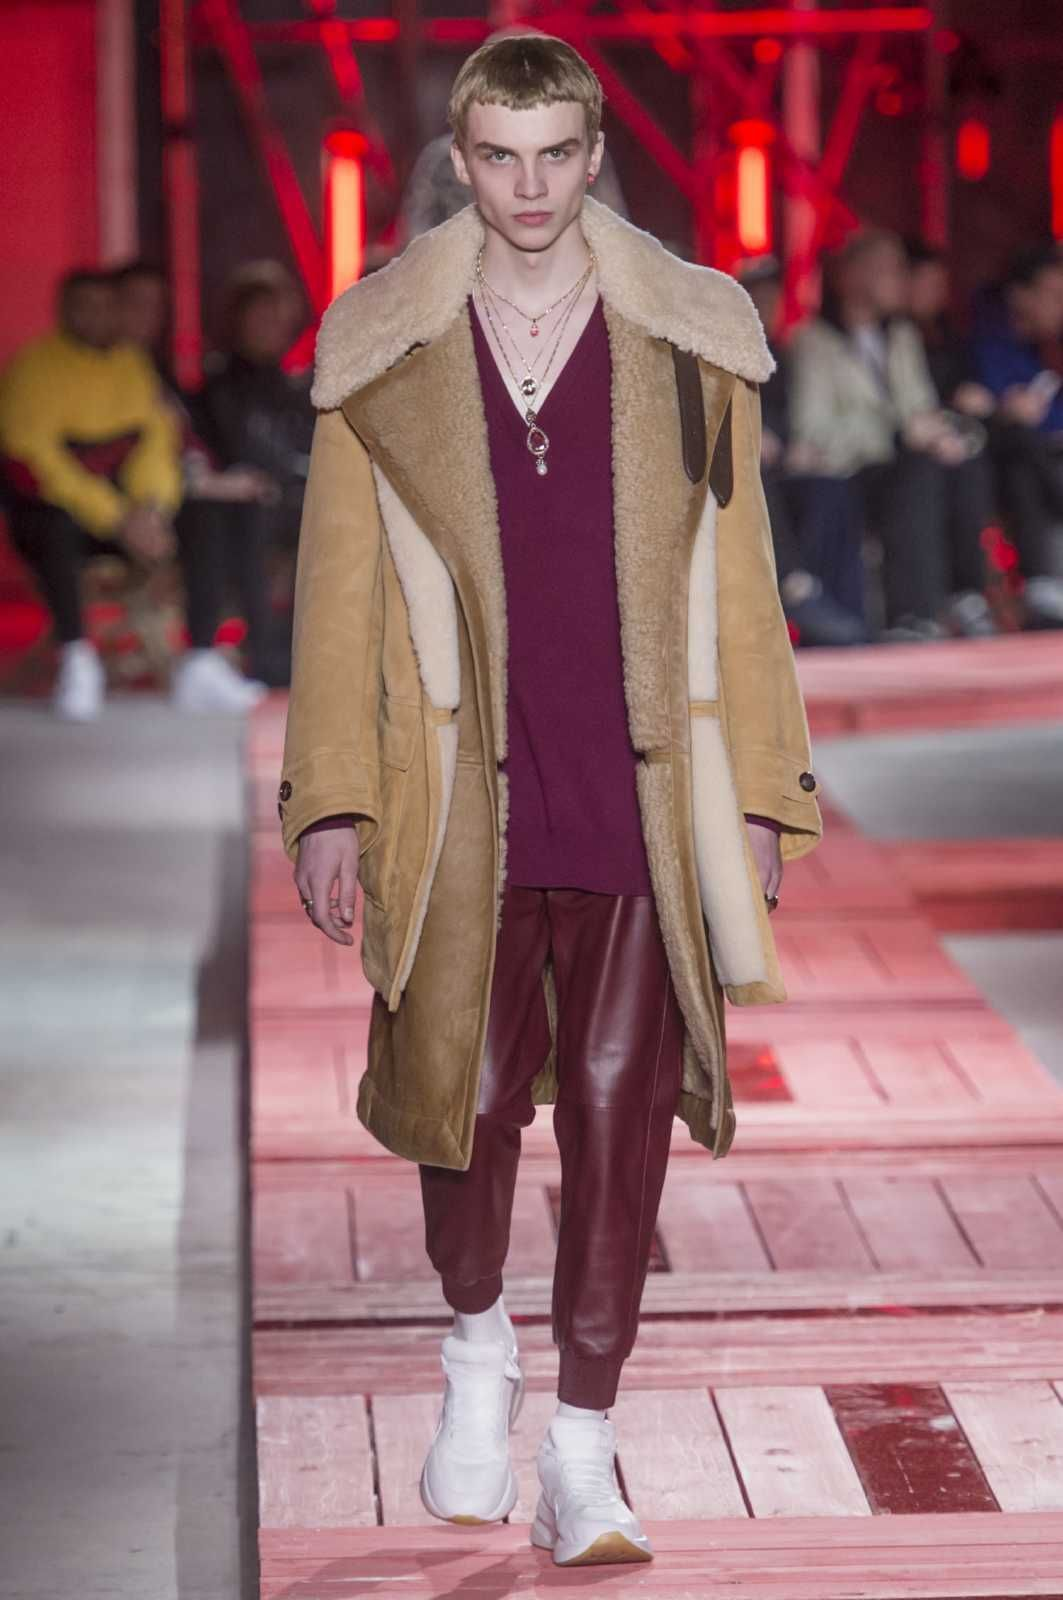 090f474eaca69 Male Fashion Trends: Alexander McQueen Fall-Winter 2018-2019 | Paris  Fashion Week - BORREGO #FashionTrends2019